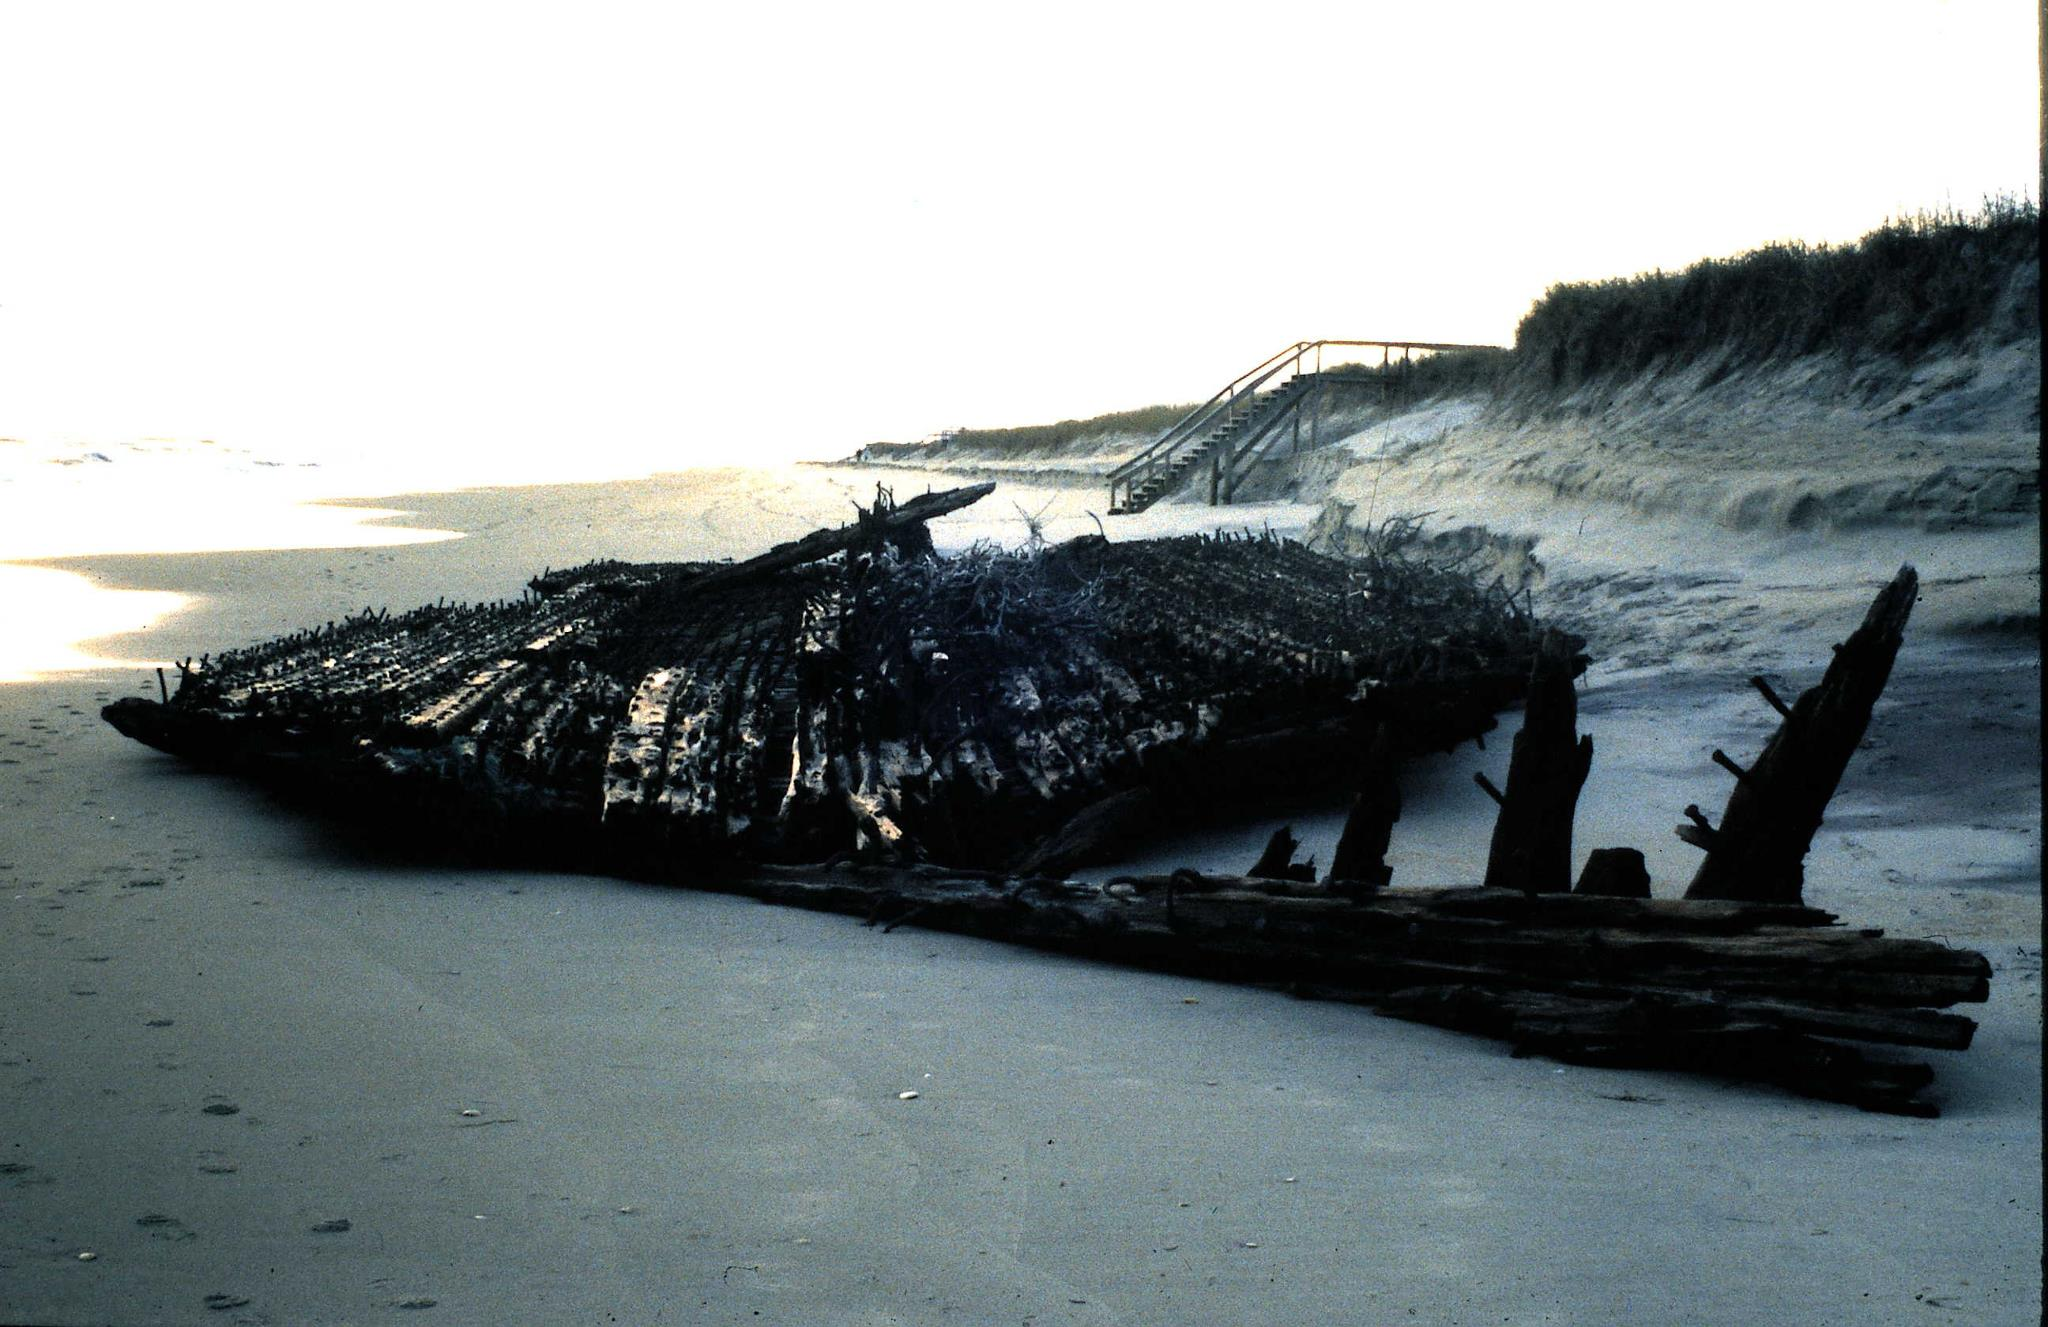 Shipwrecked on Hatteras